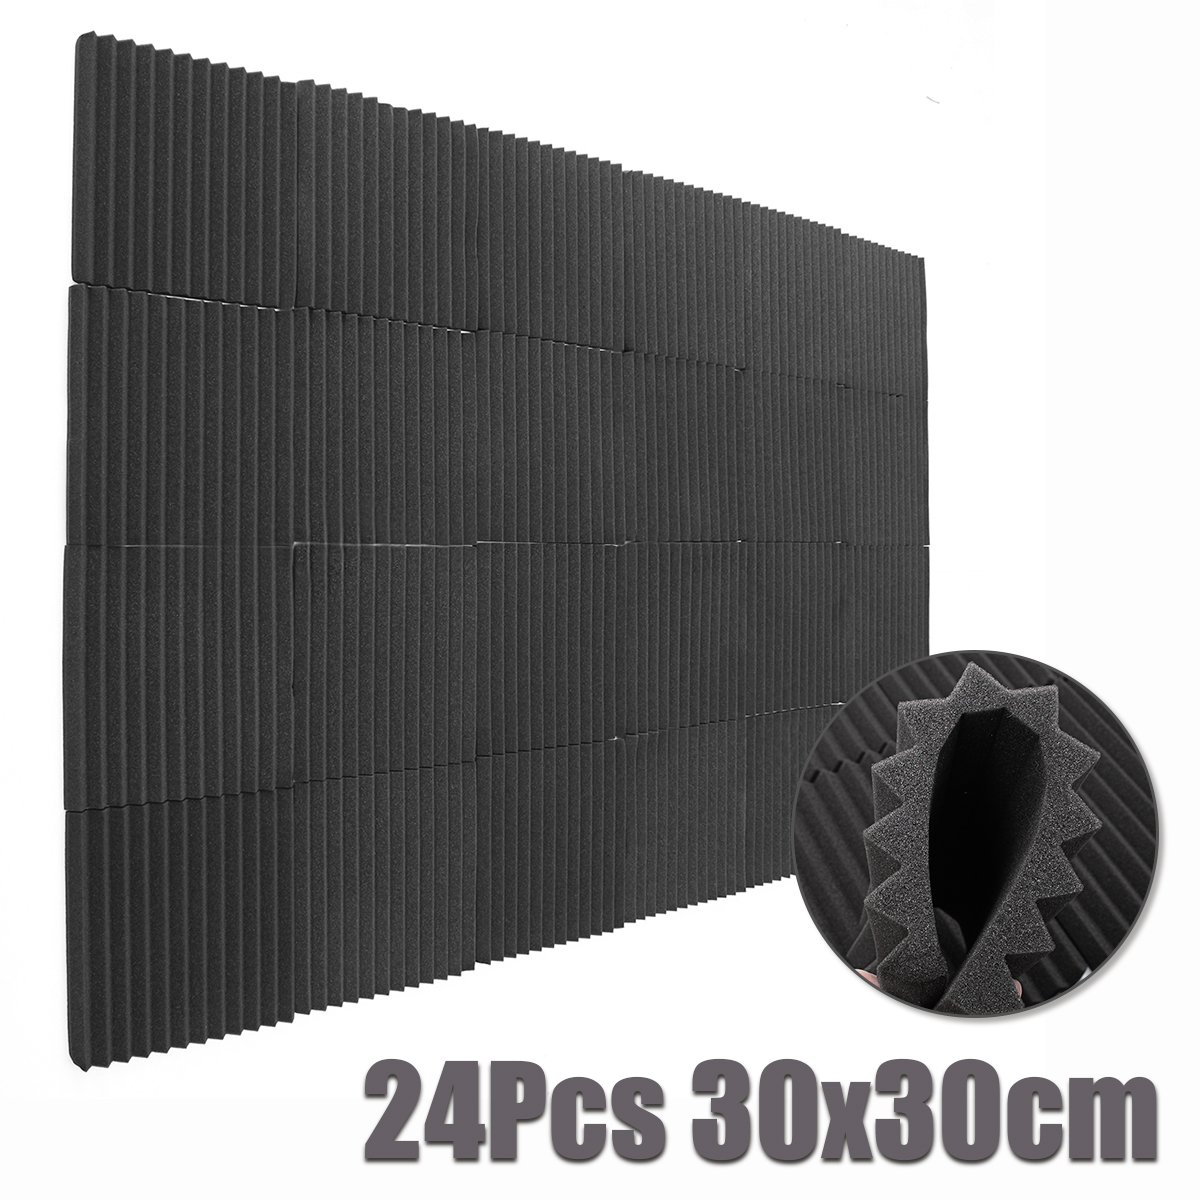 24 pcs 30x30 cm Insonorisation Mousse Mousse Acoustique Traitement Studio Chambre Absorption Du Bruit Wedge Tuiles Polyuréthane Mousse